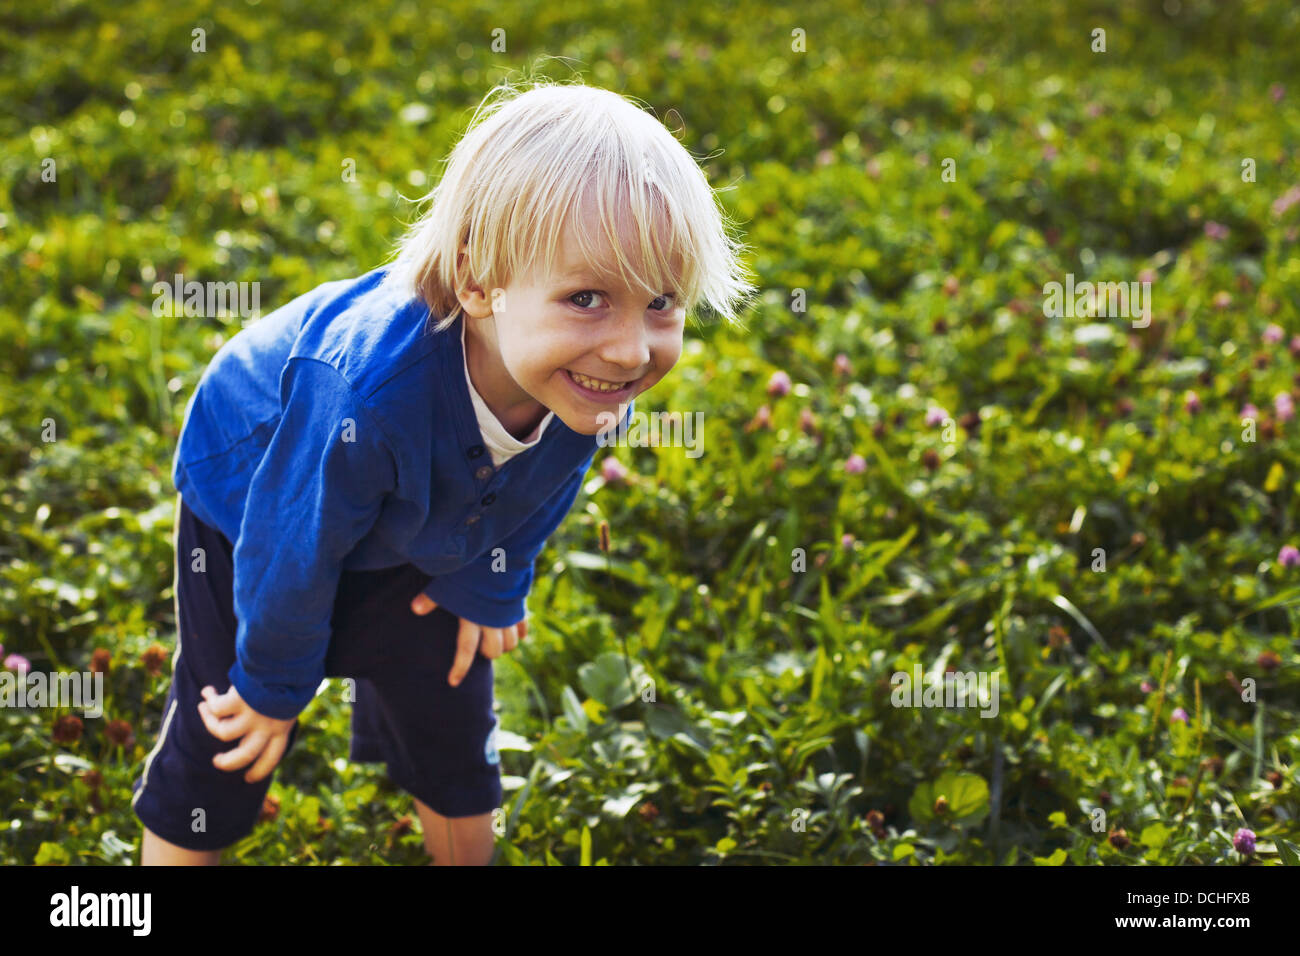 cute crafty little boy outdoors, portrait of smiling child - Stock Image